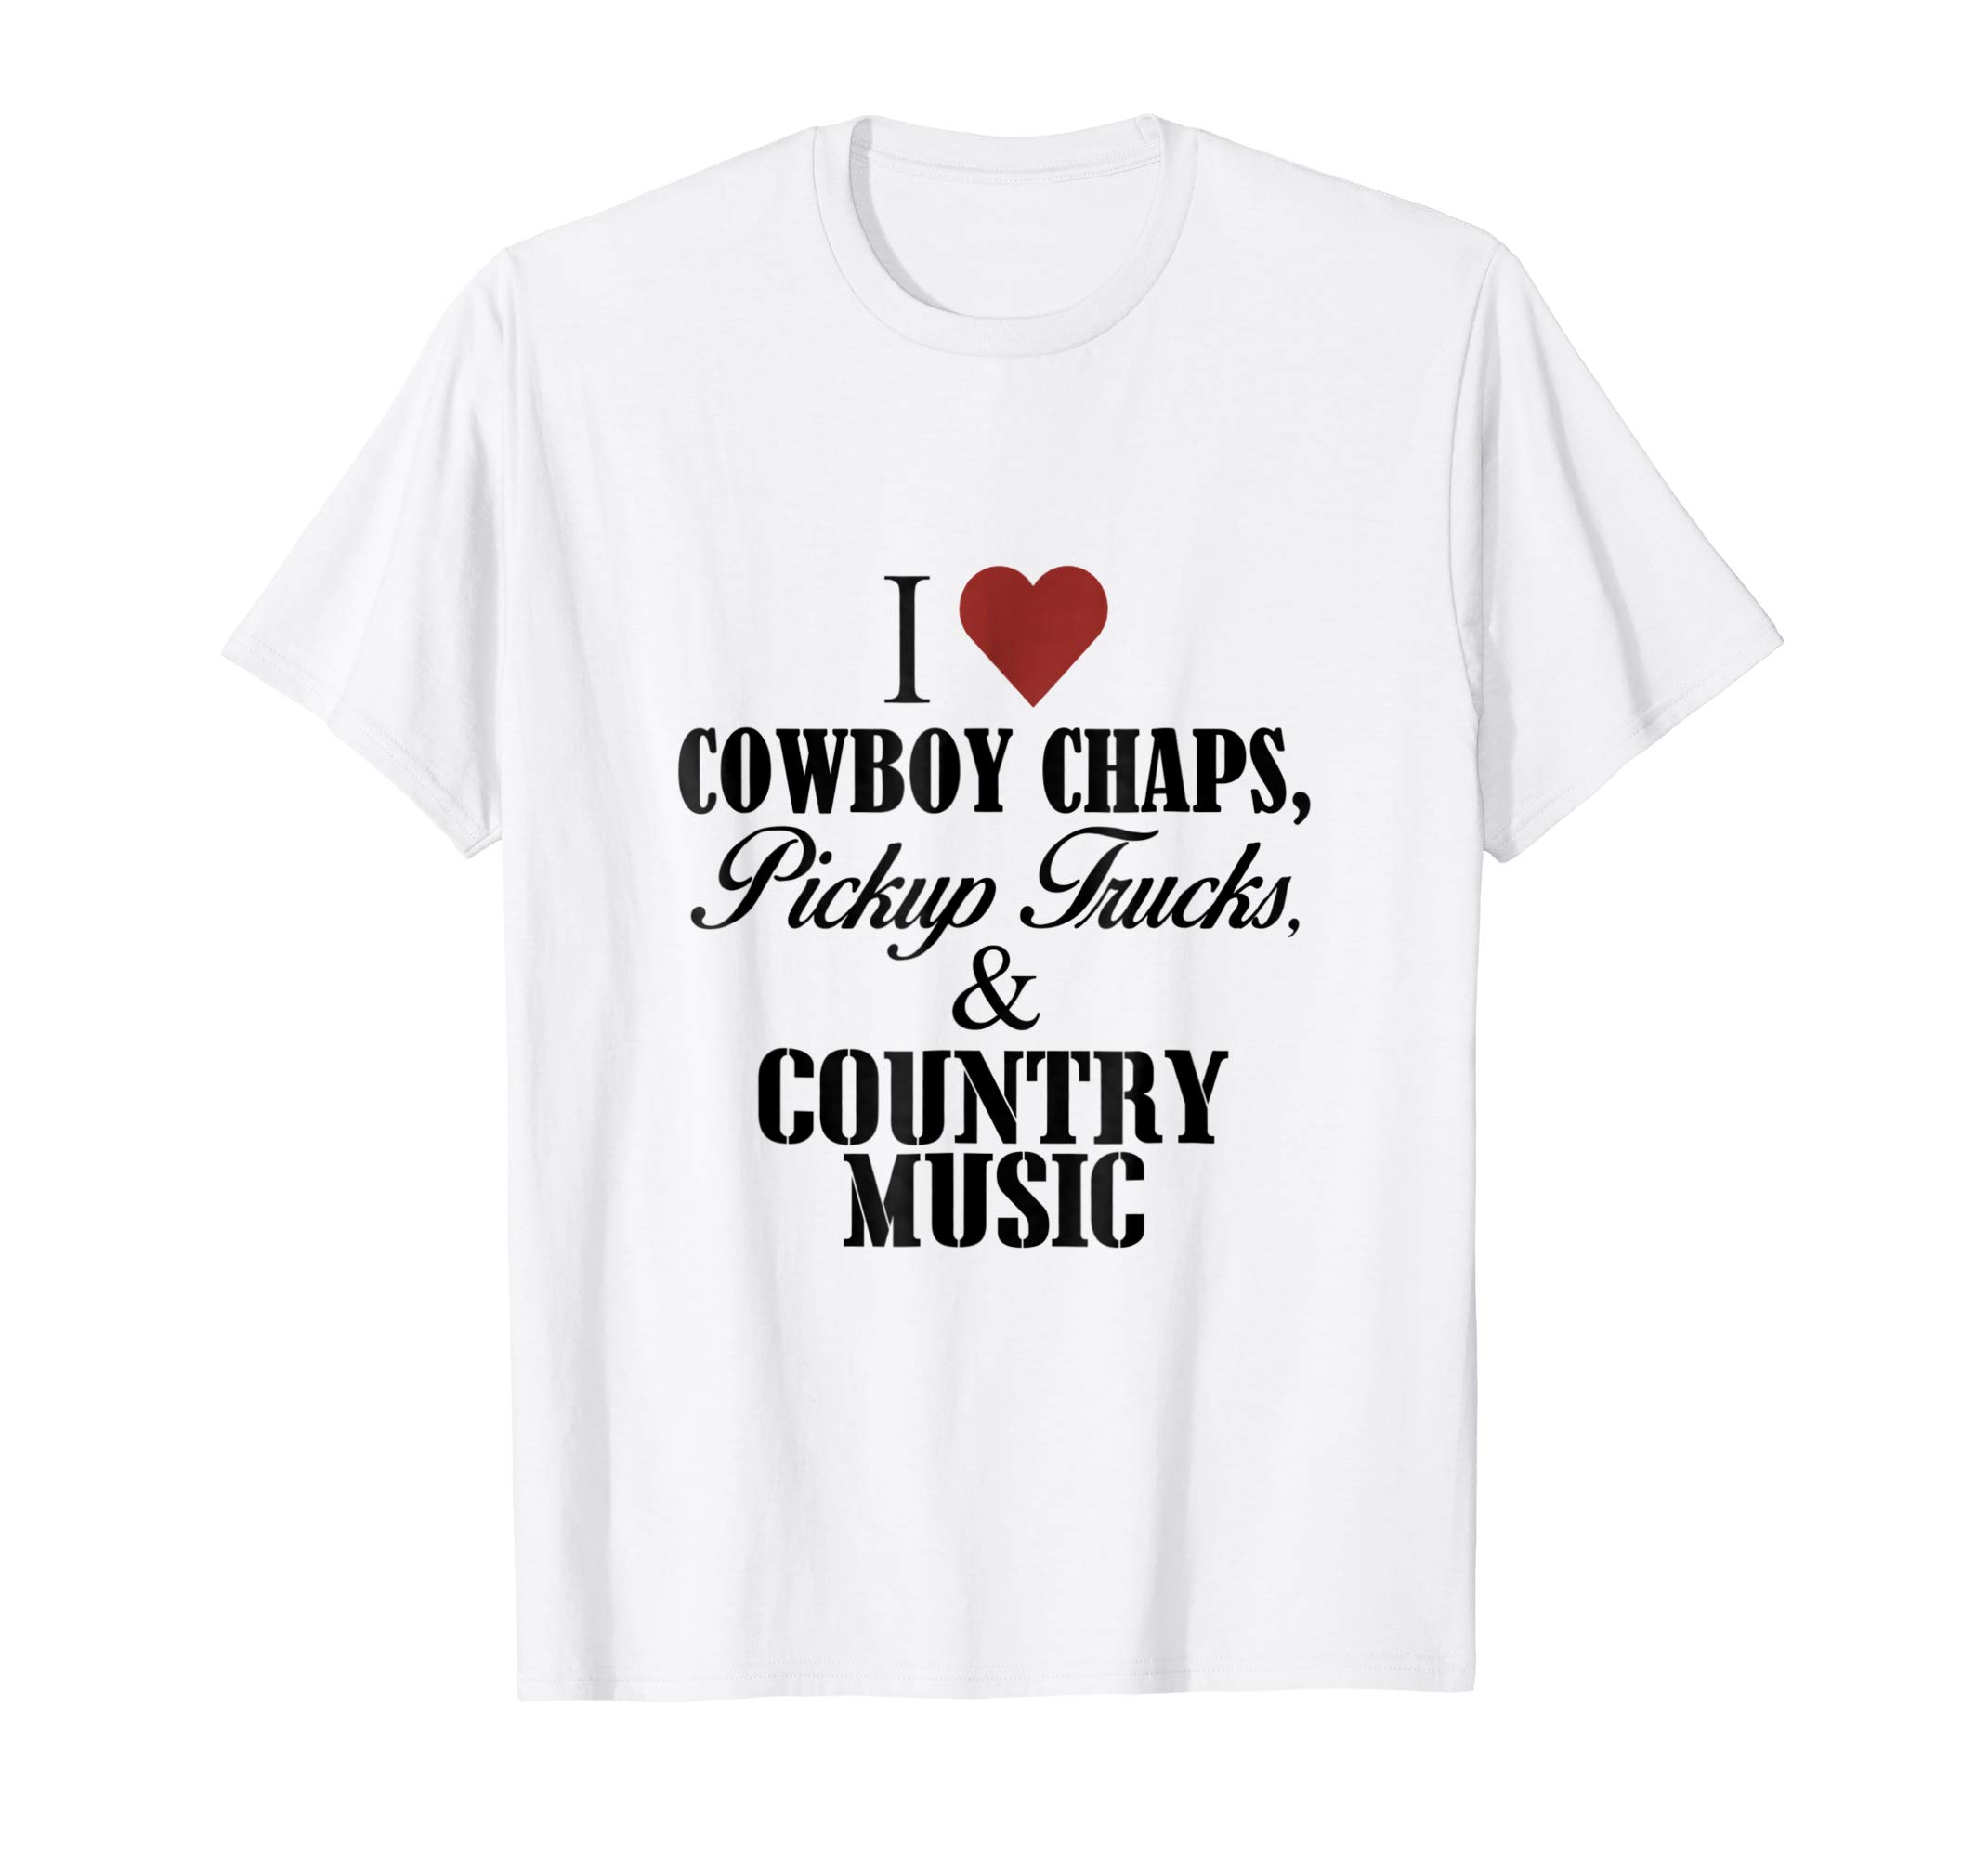 Rodeo Cowboy Valentines Day Png - Amazon.com: I Love Rodeos, Cowboys, Cowgirls, and Chaps T-Shirt ...